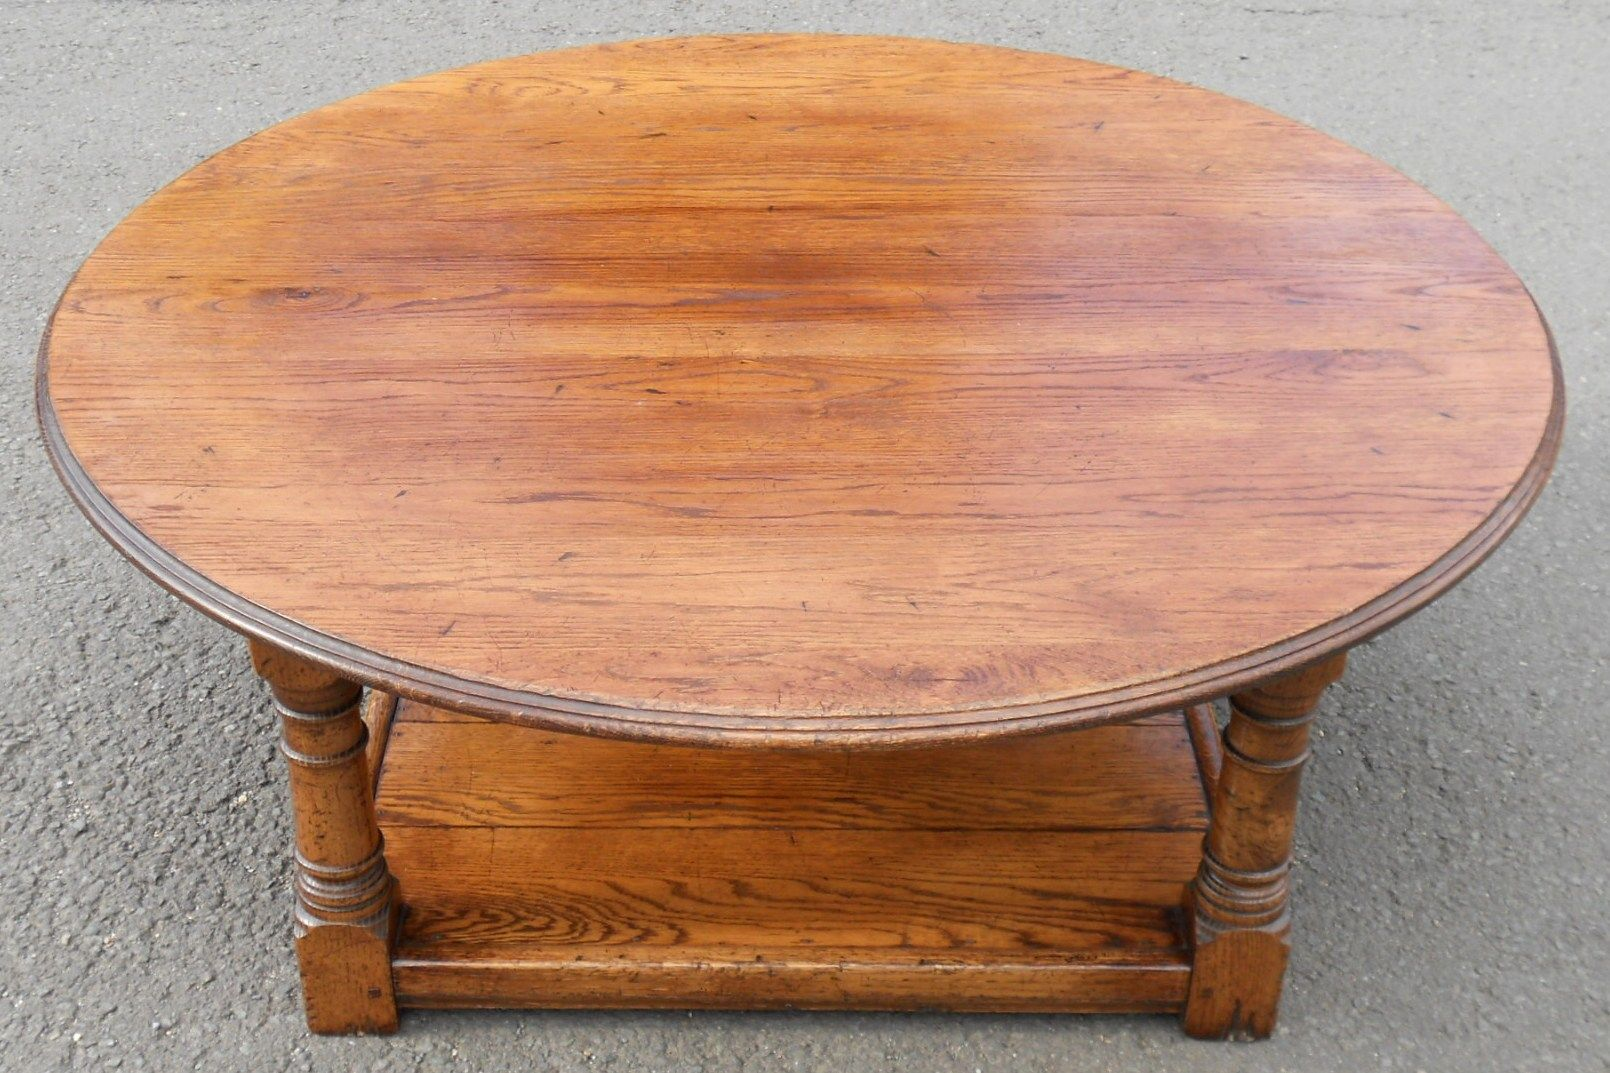 Large Round Oak Coffee Table Sold